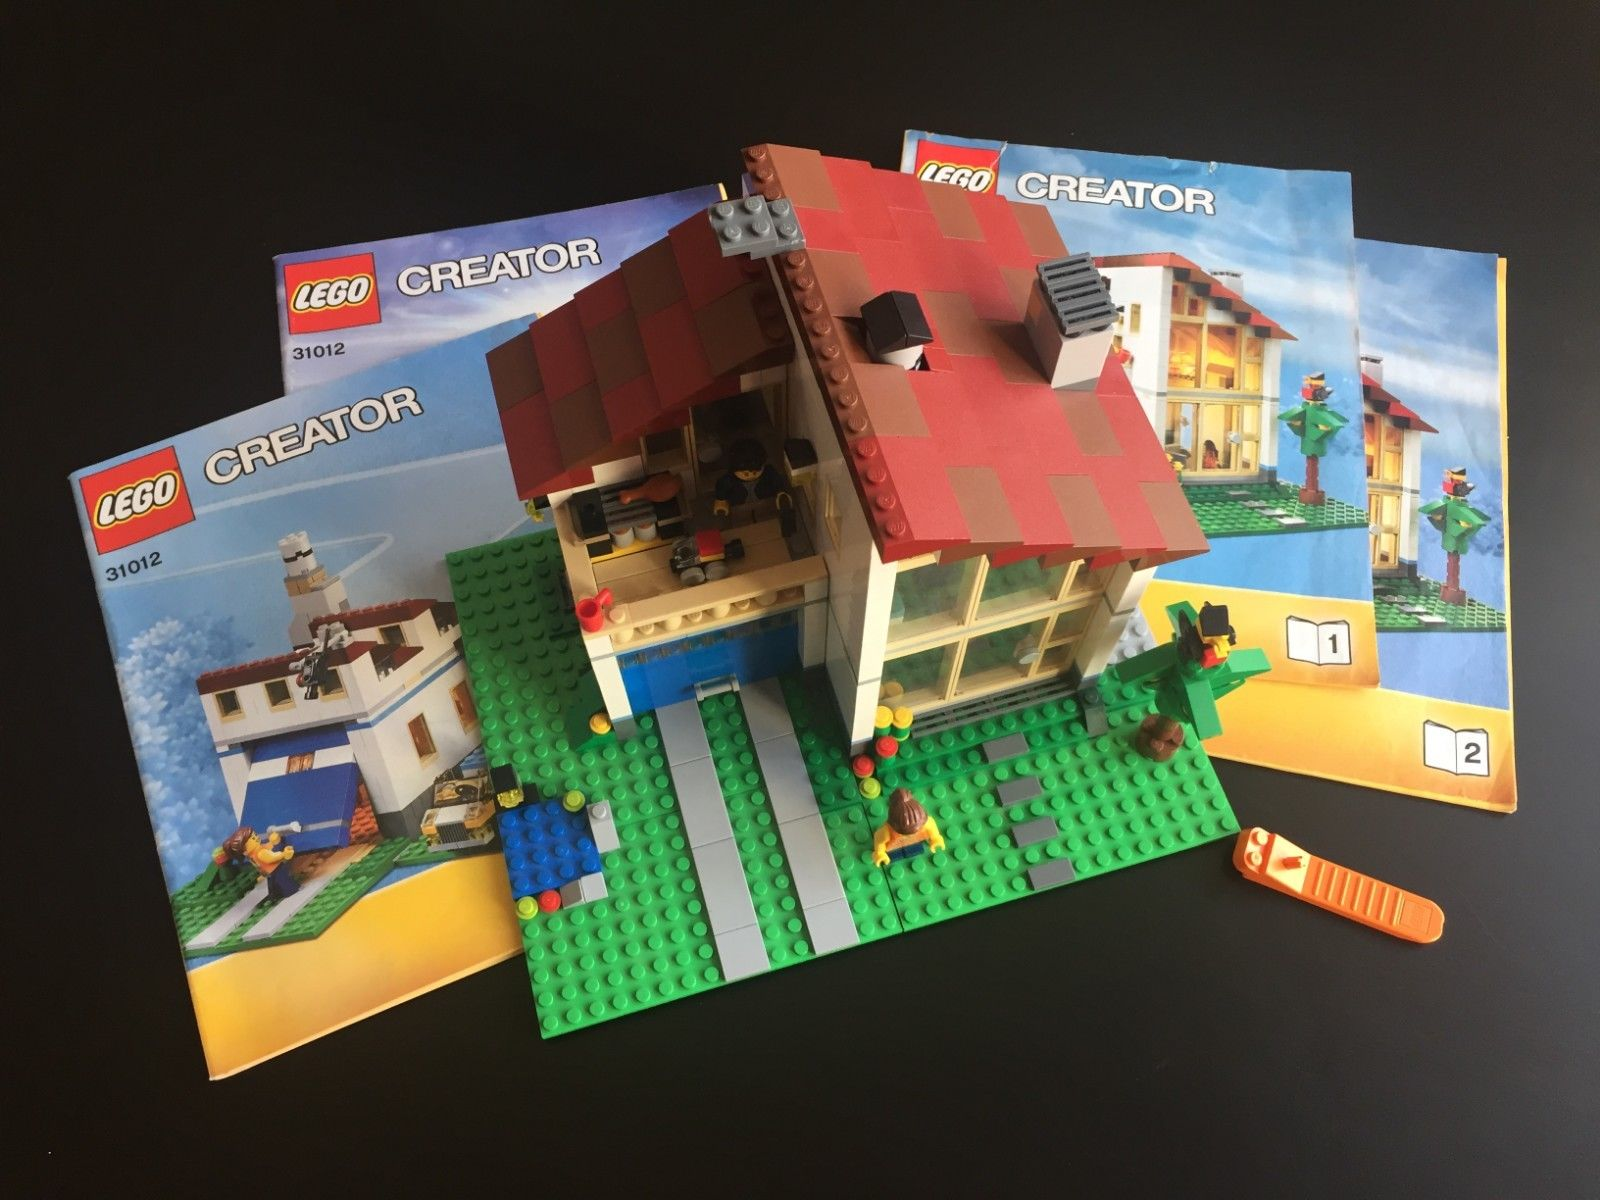 LEGO Creator 31012 Family House 3-in-1 COMPLETE Set+Manuals+Minifigs+Light Brick